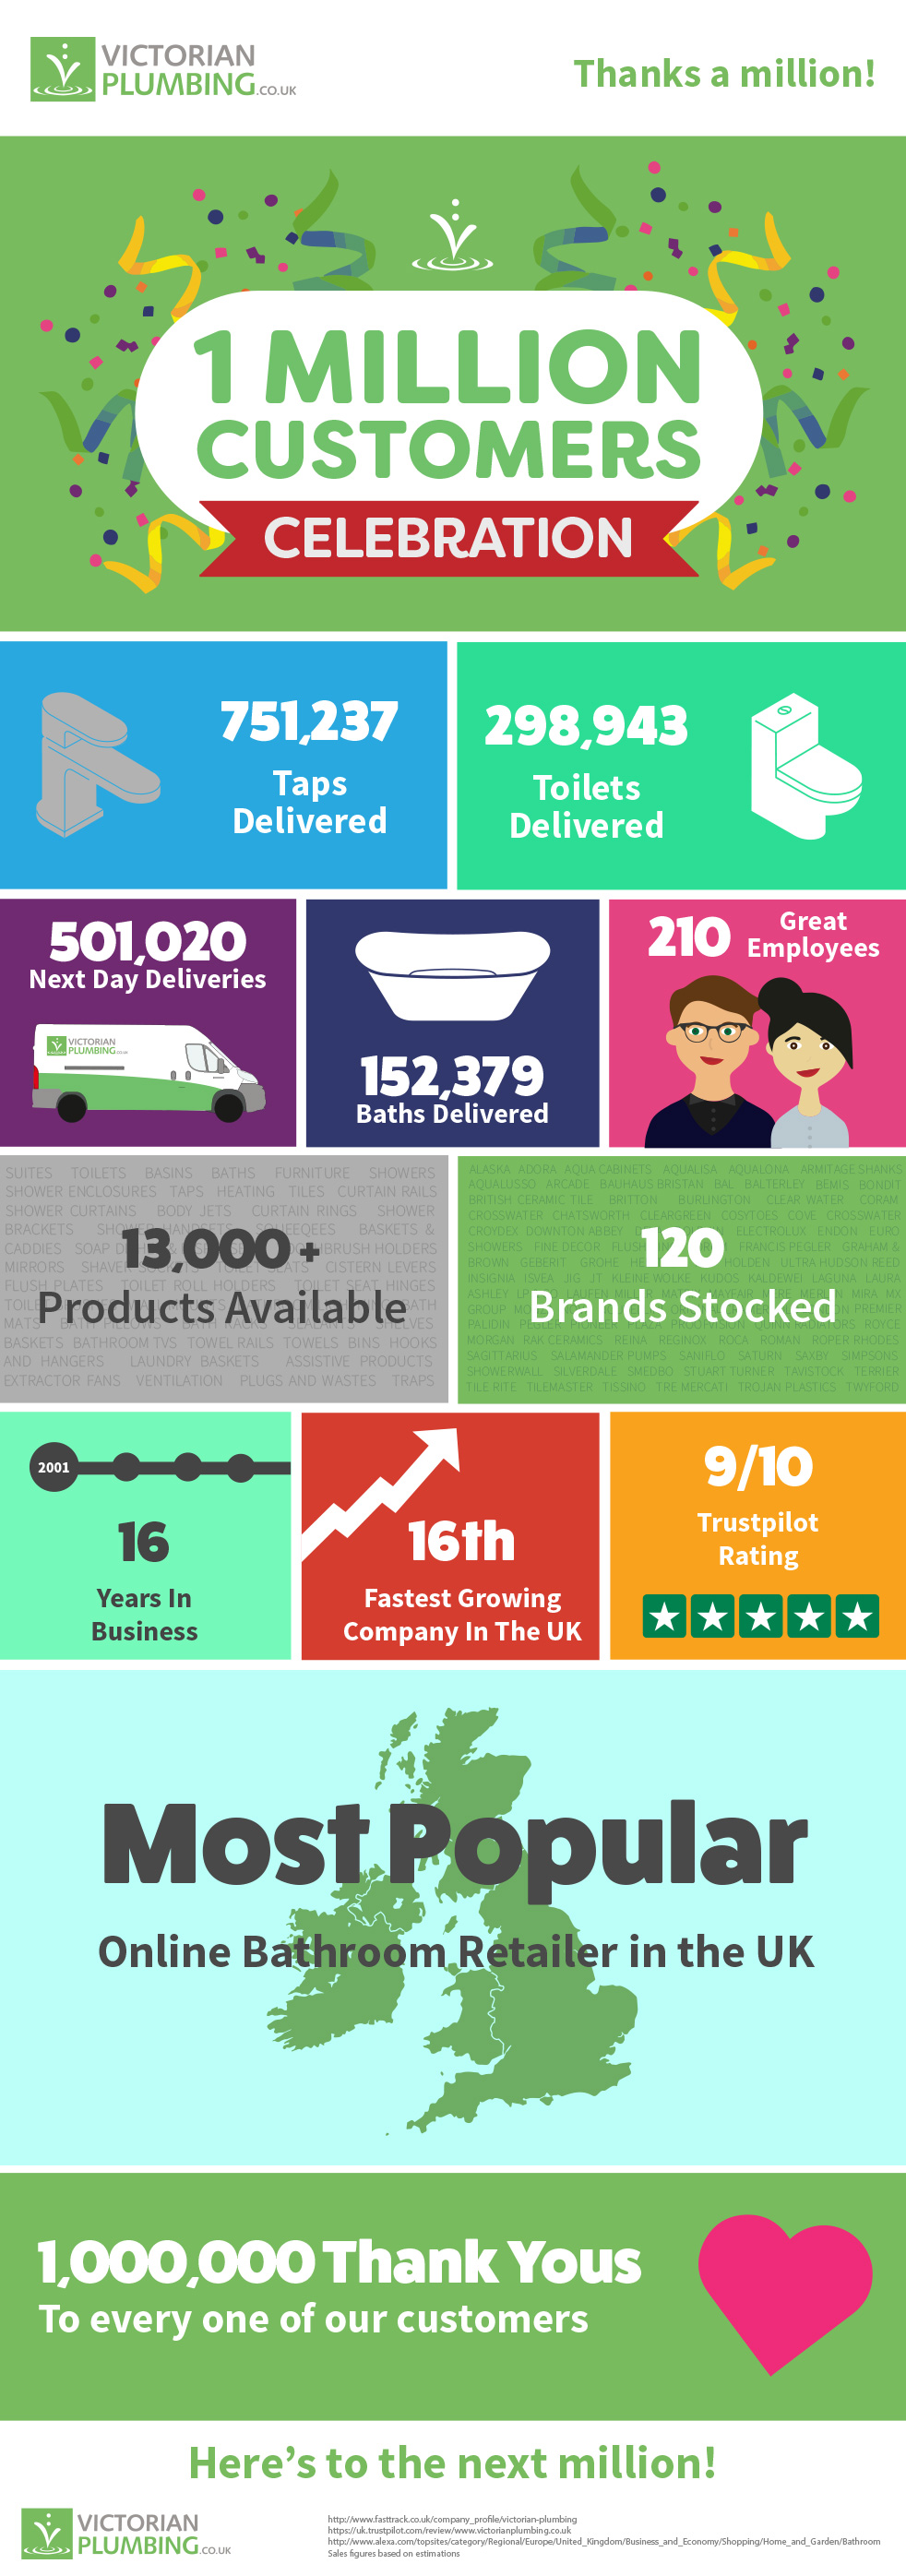 Victorian Plumbing Reaches 1 million Customers Infographic